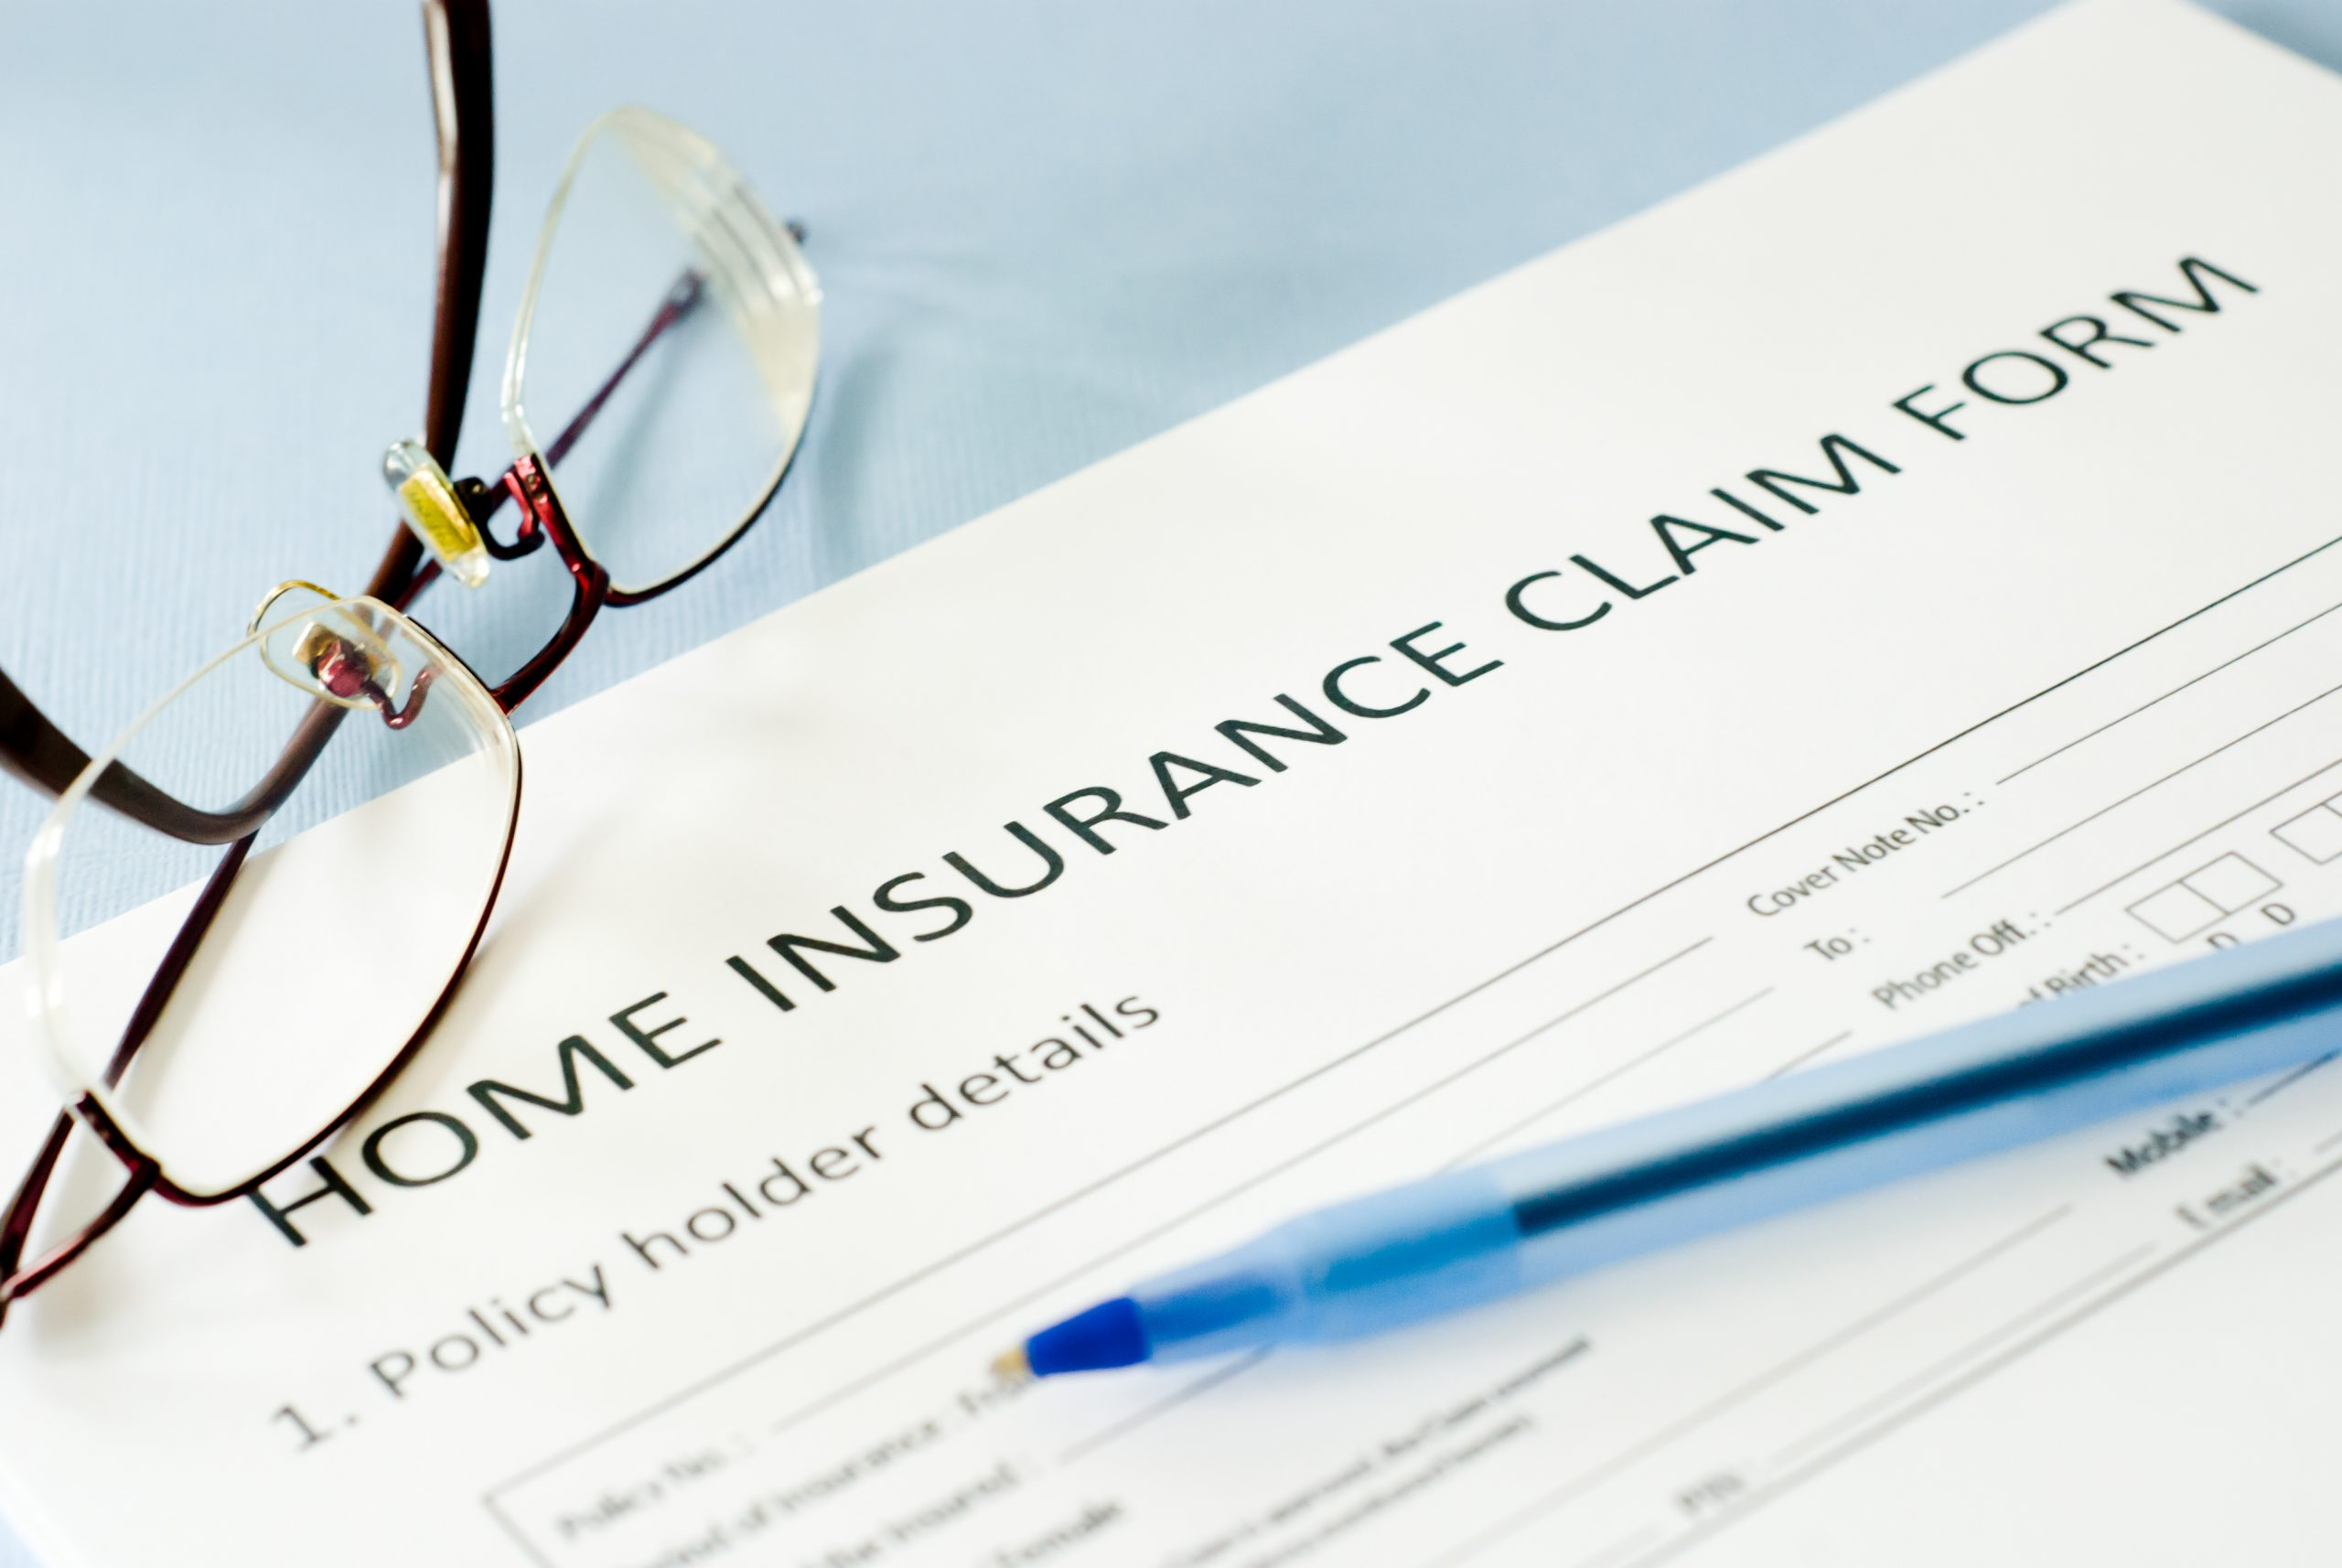 insurance claims, property insurance, public adjuster, insurance mistakes